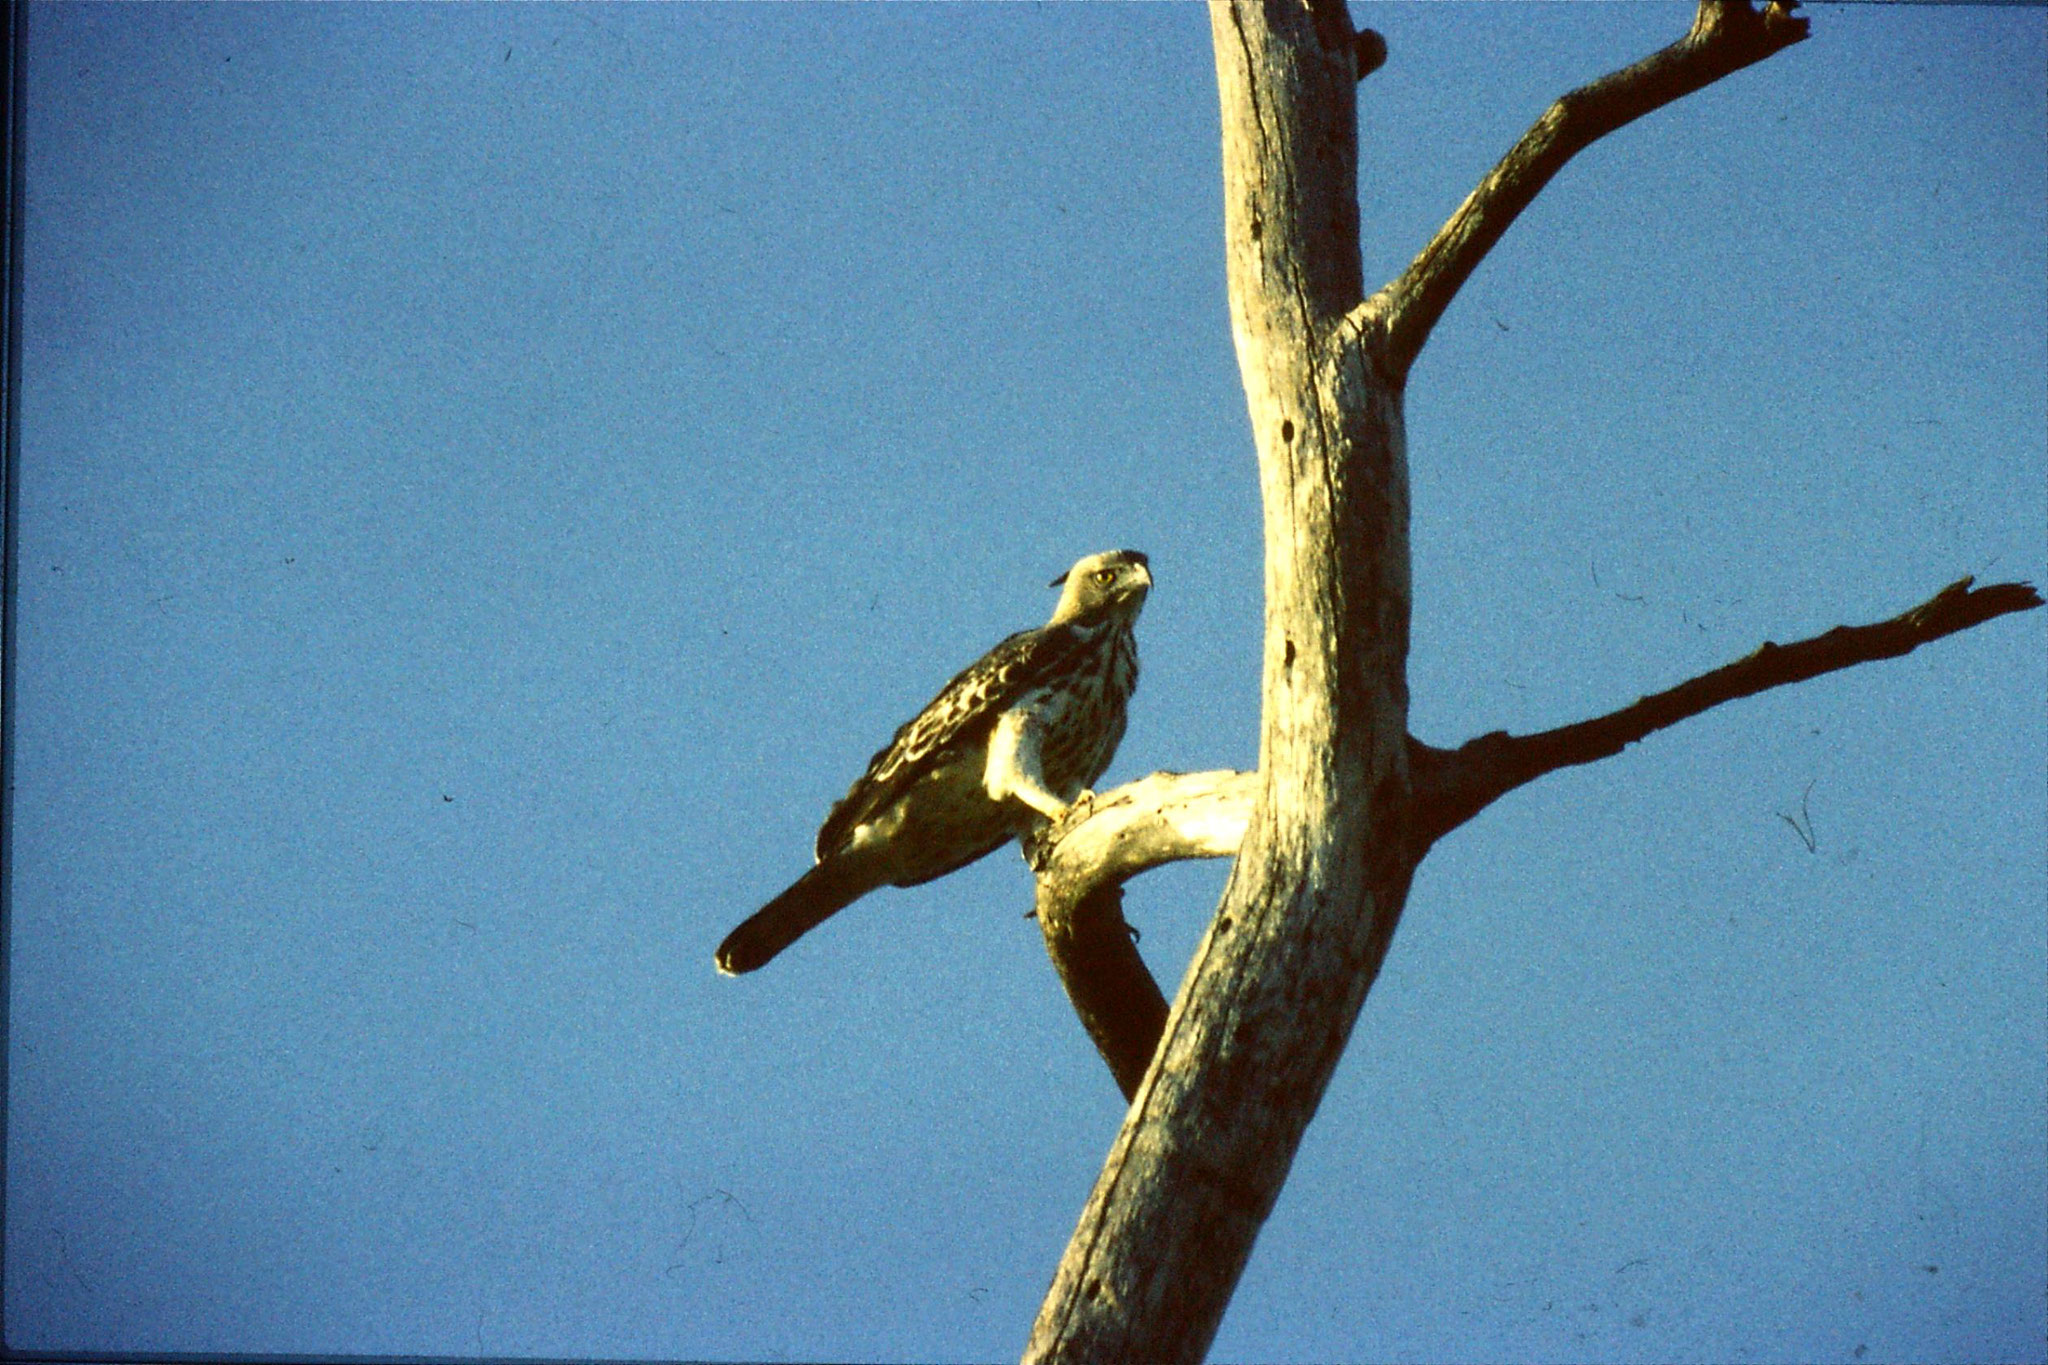 28/1/1990: 1: Uda Walawe Crested Hawk Eagle